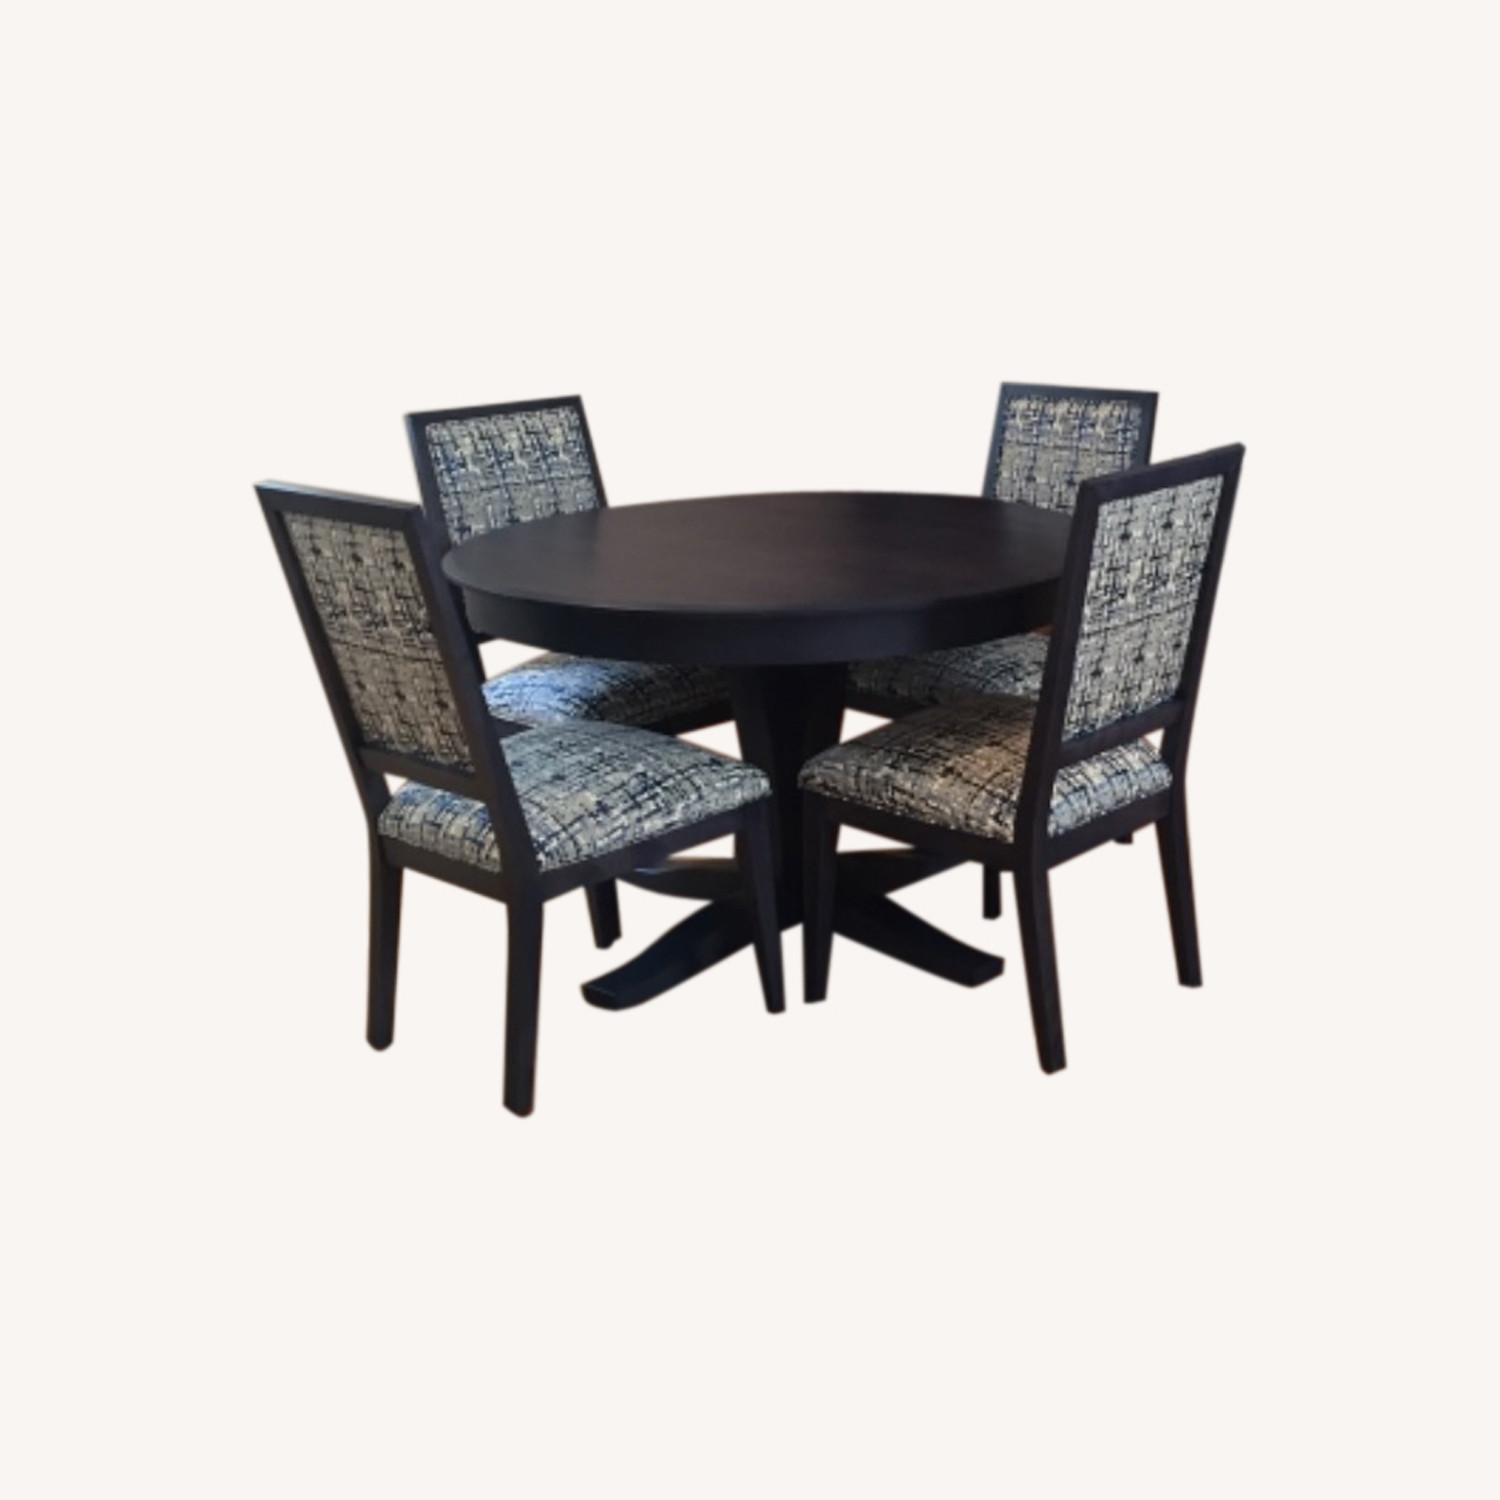 Navy Candel Dining Table and Chairs - image-0